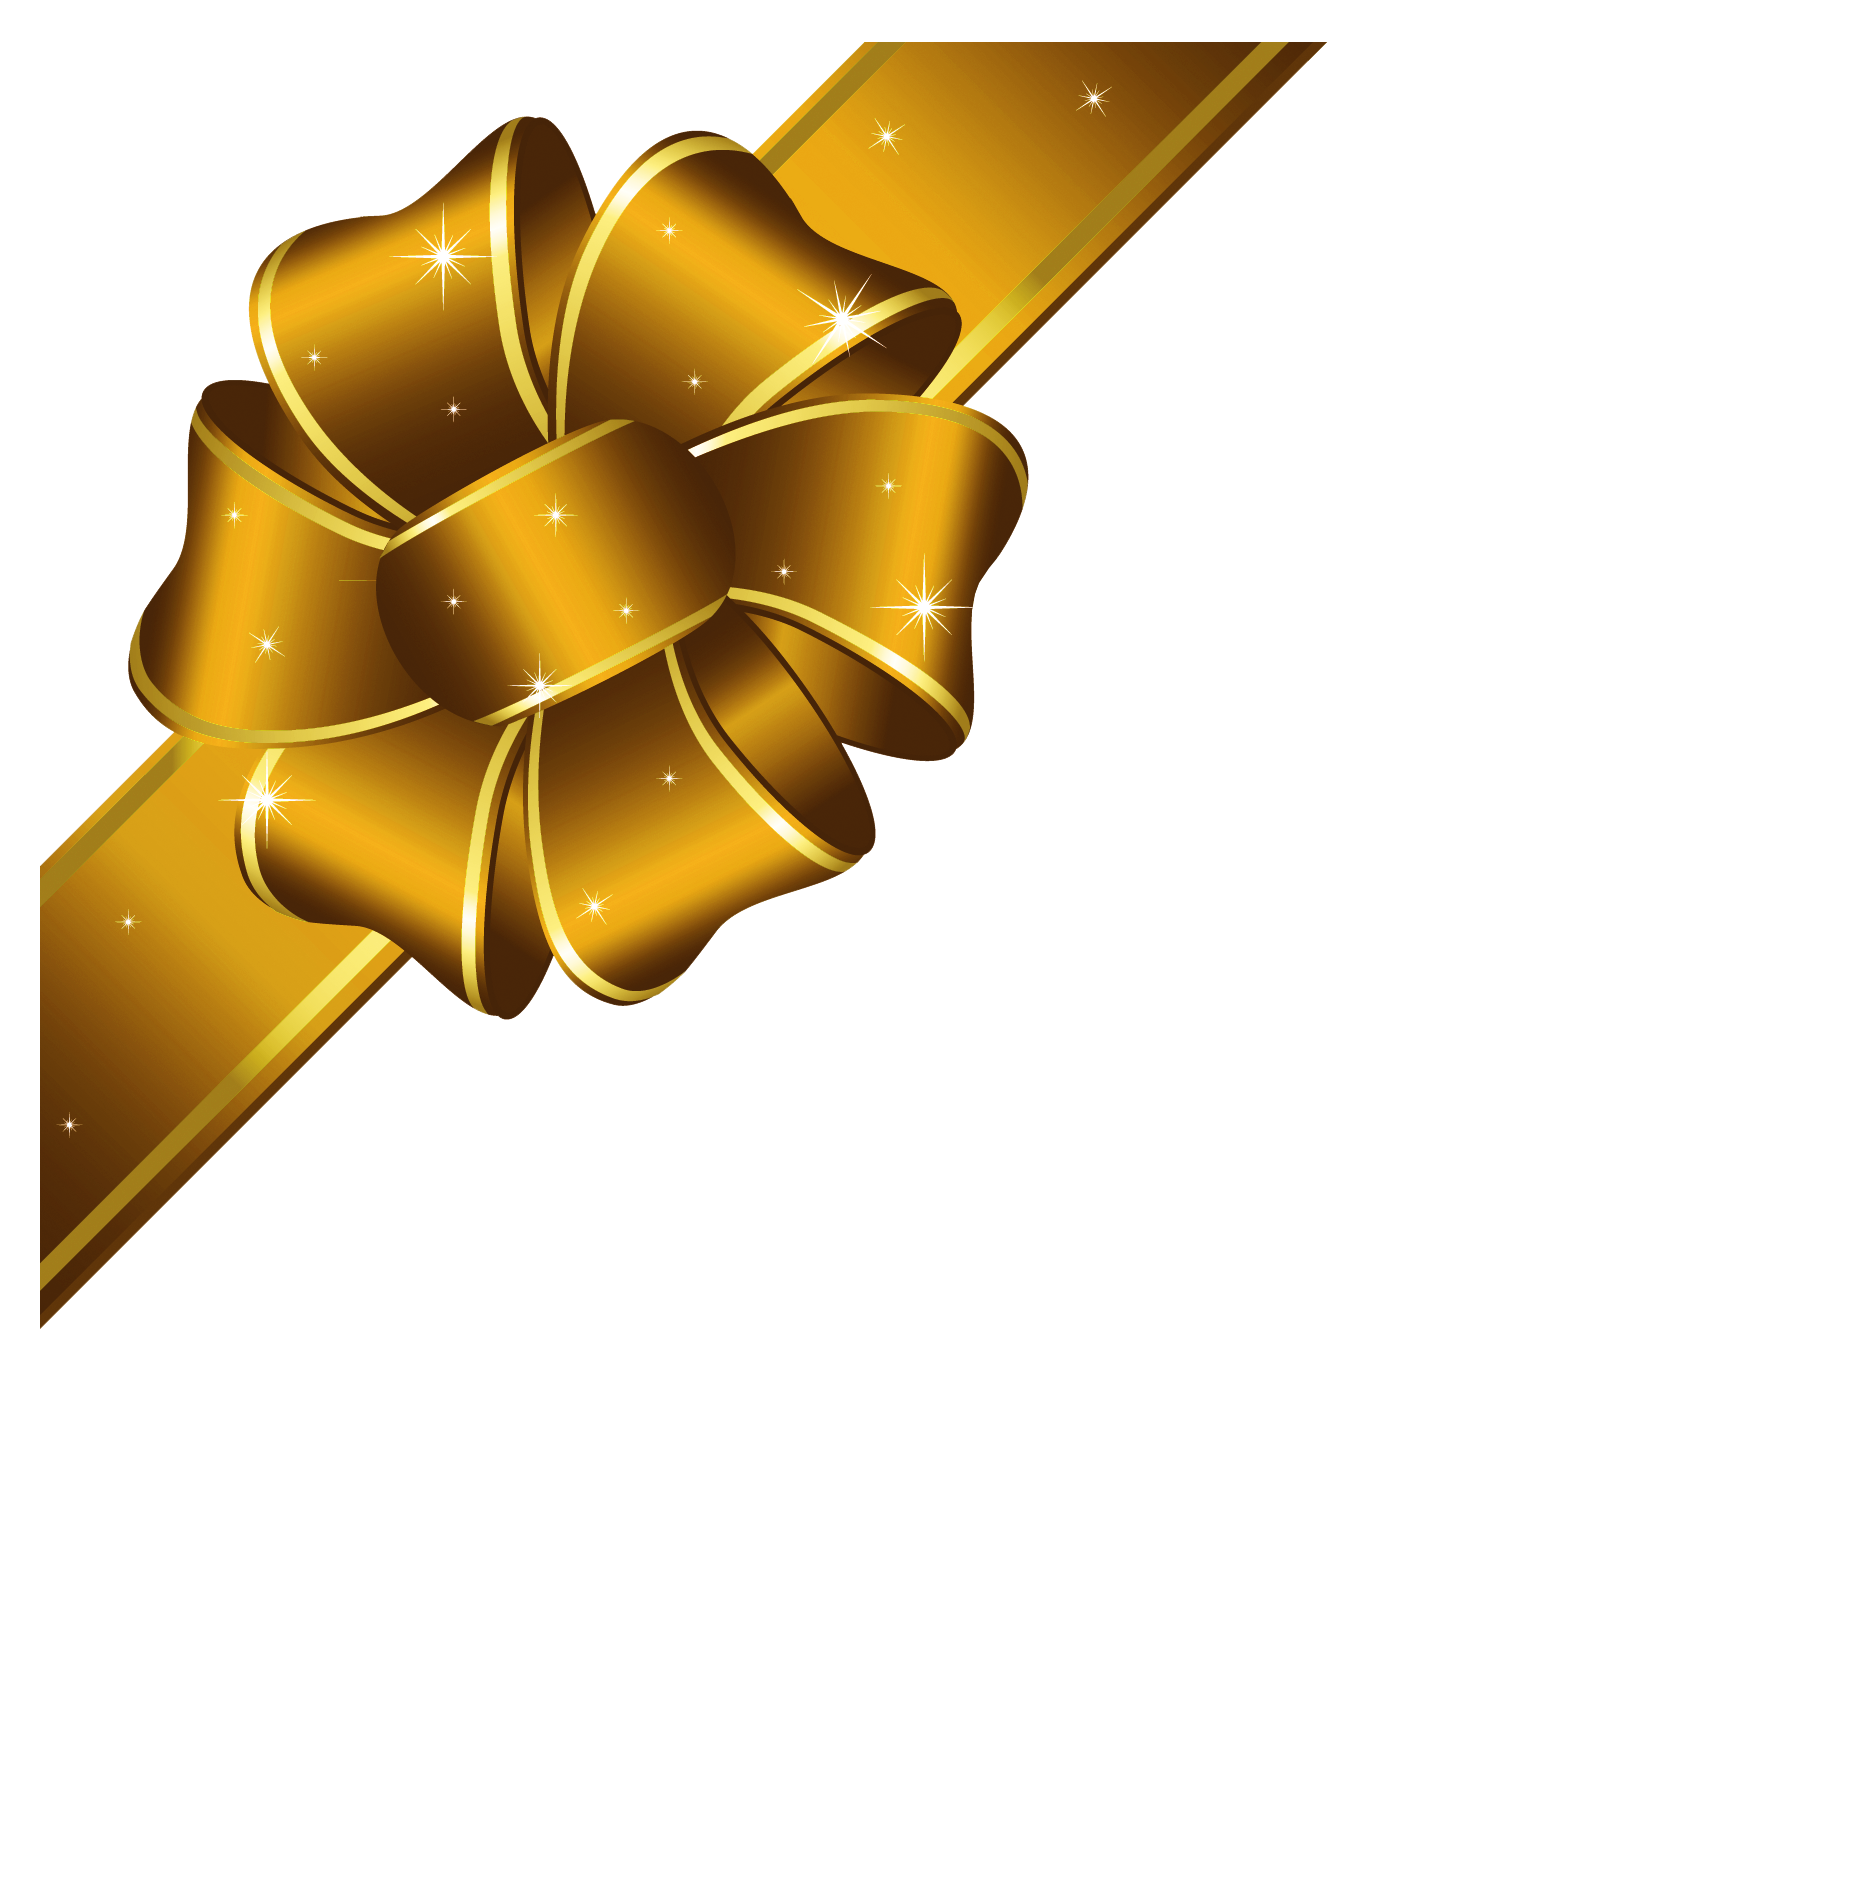 Golden ribbon png. Collection of gold